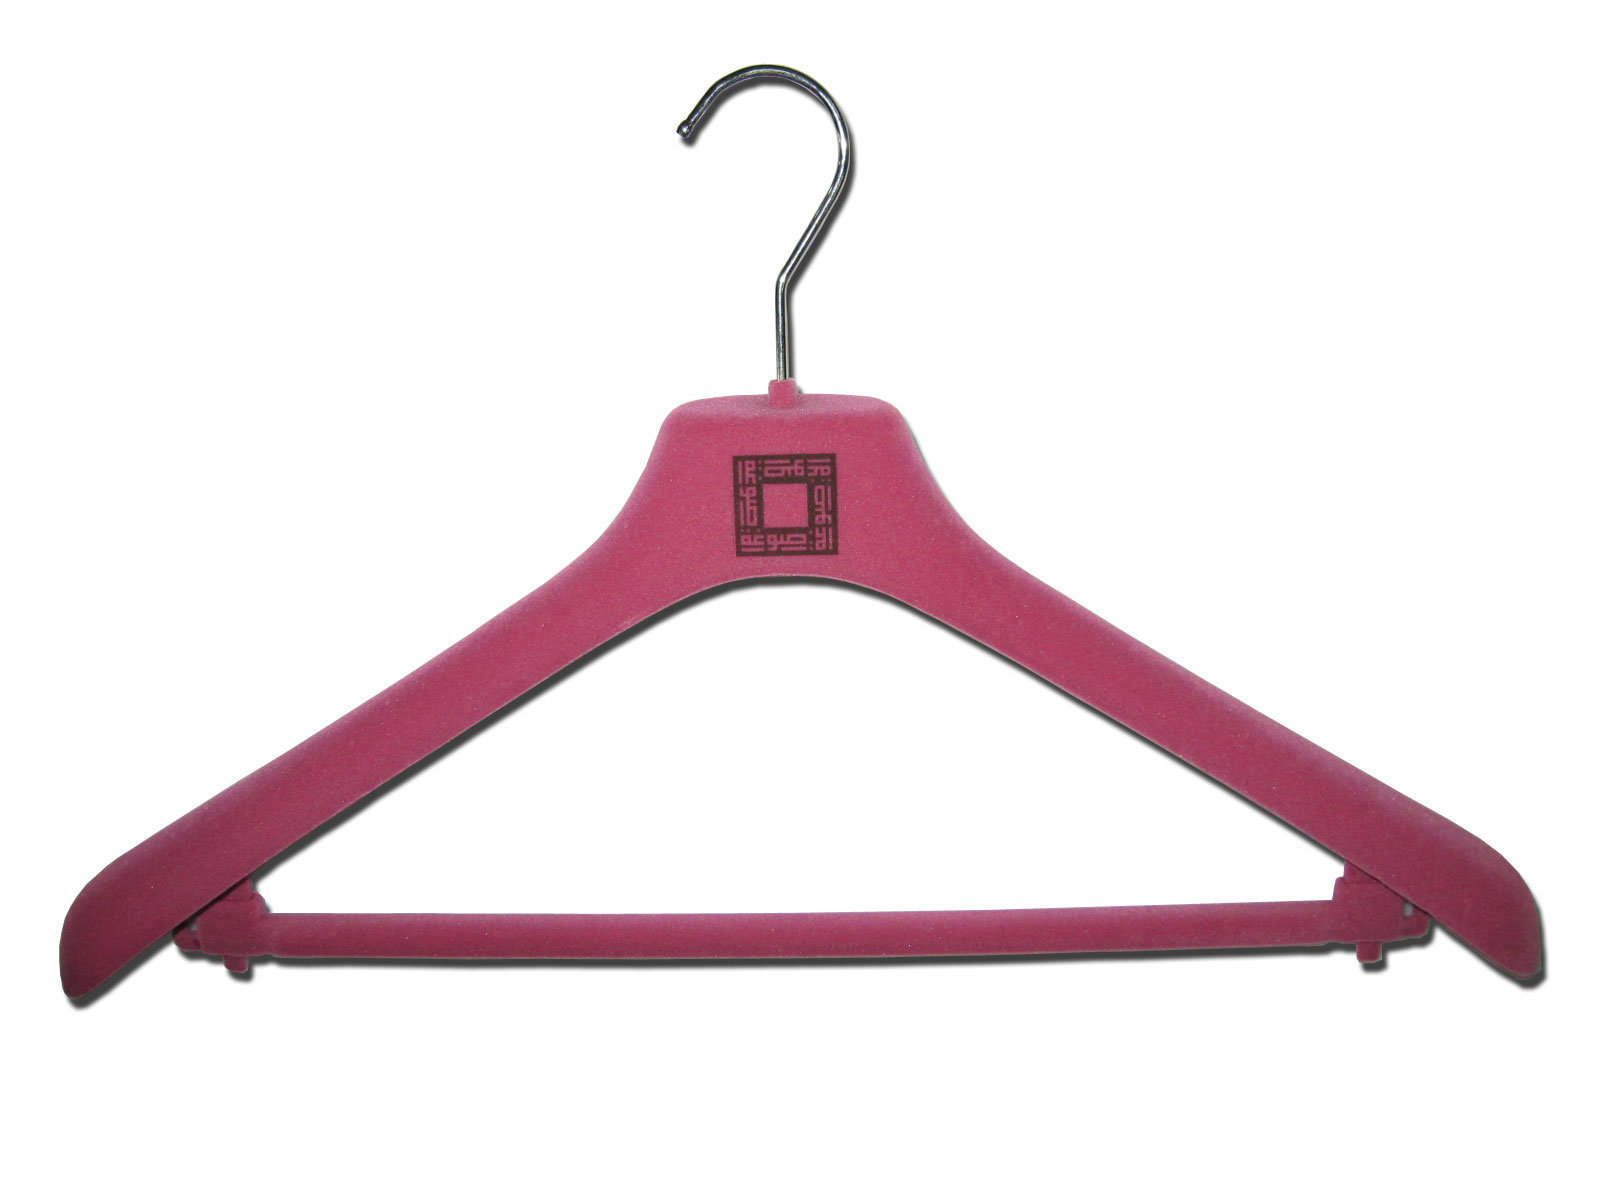 China Clothes Hanger Plastic Hanger  China Clothes Hanger. Golf Cart Garage Door. Epoxy Clear Coat Garage Floor. Genie Garage Door Opener Limit Switch. Storage Container Garage